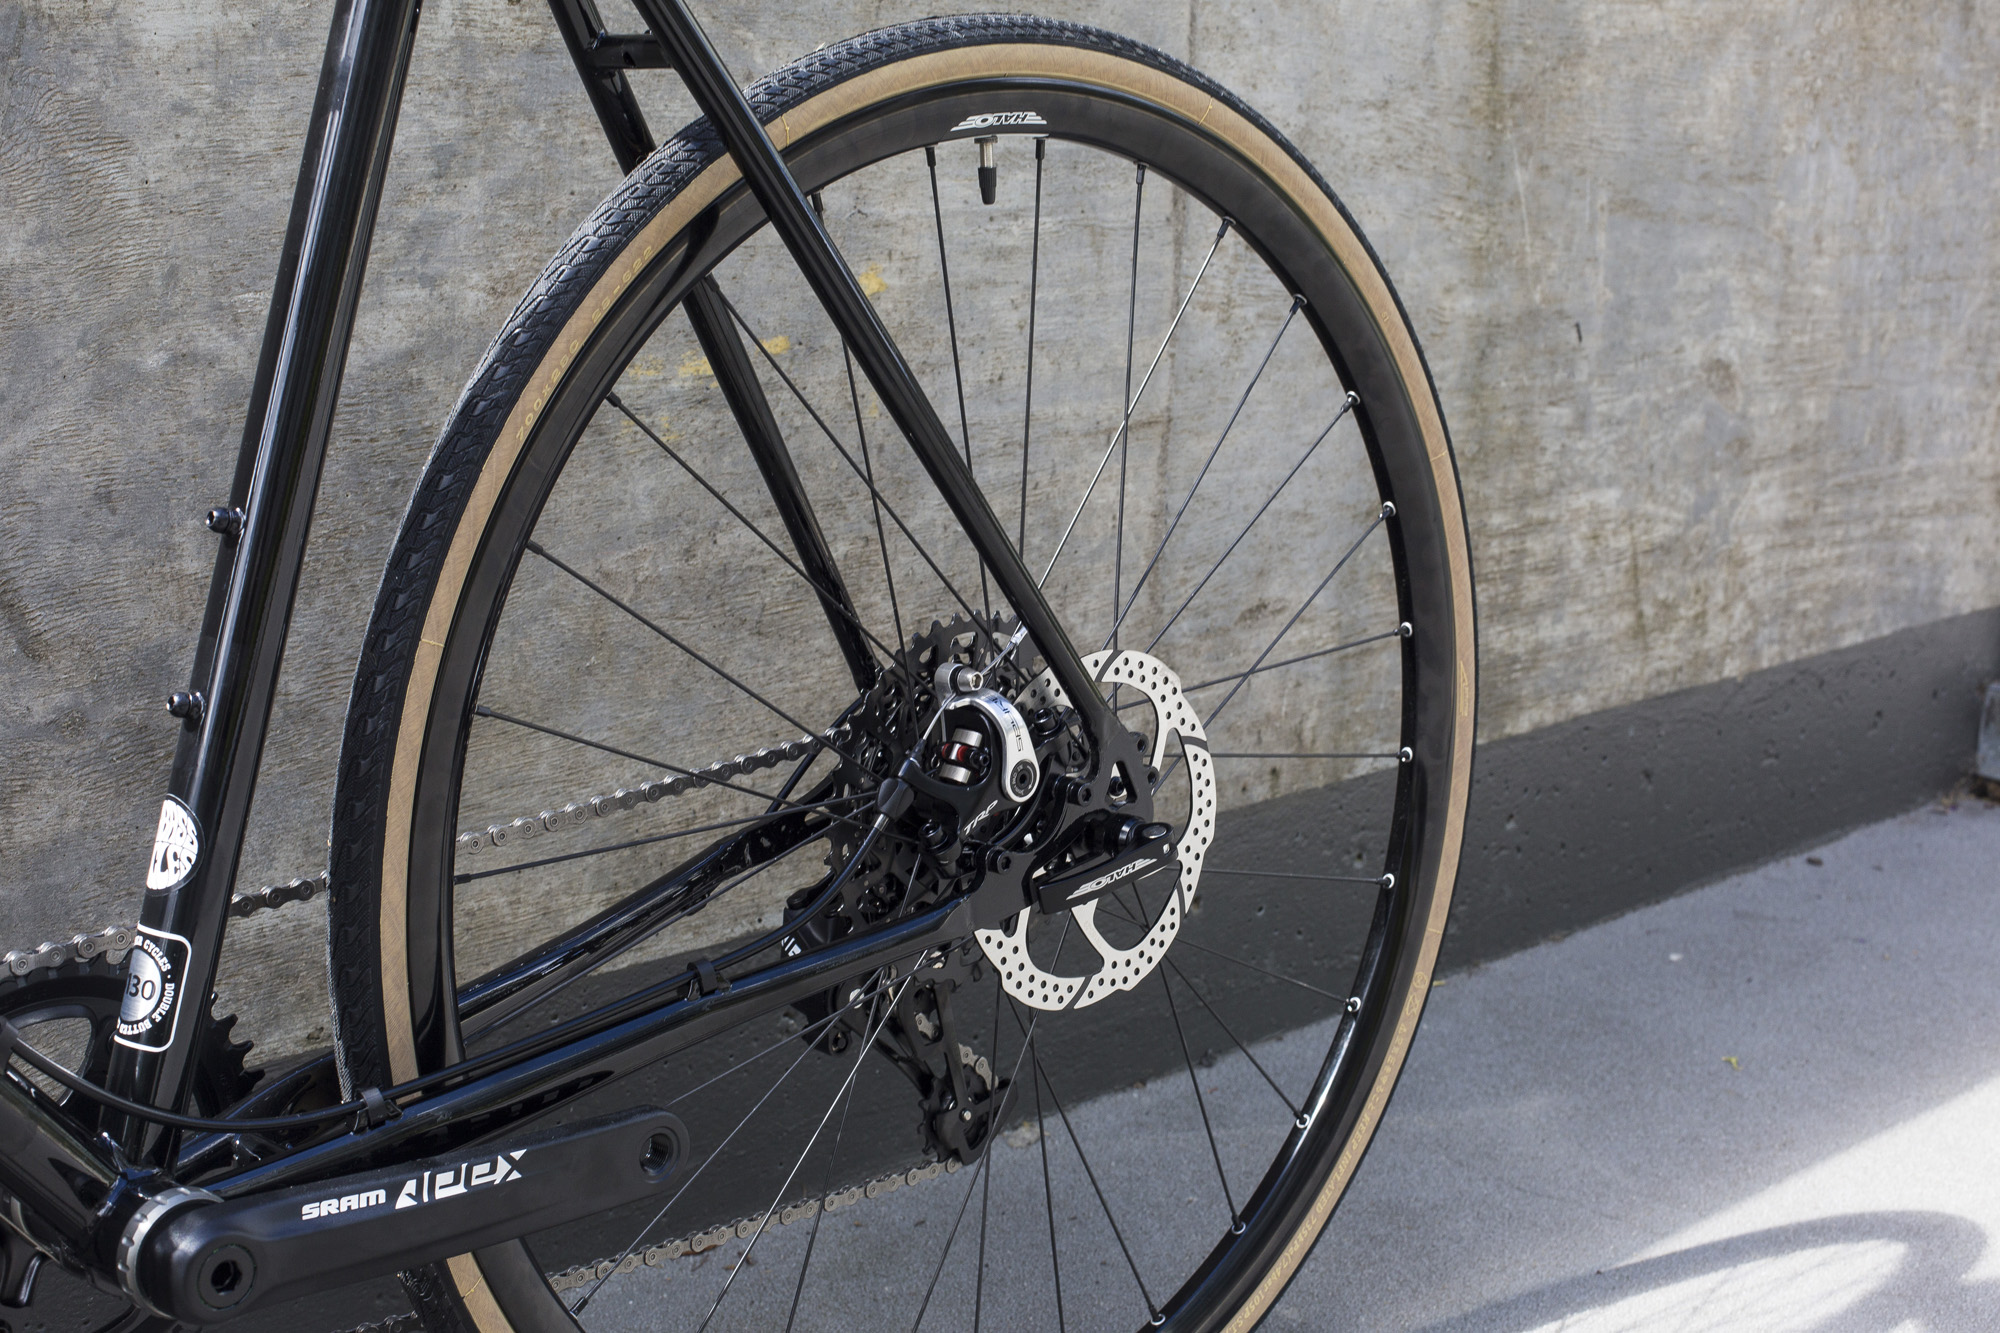 seabass-cycles-instore-bikes-25-april-2019-brother-cycles-kepler-disc-complete-black-5211.jpg